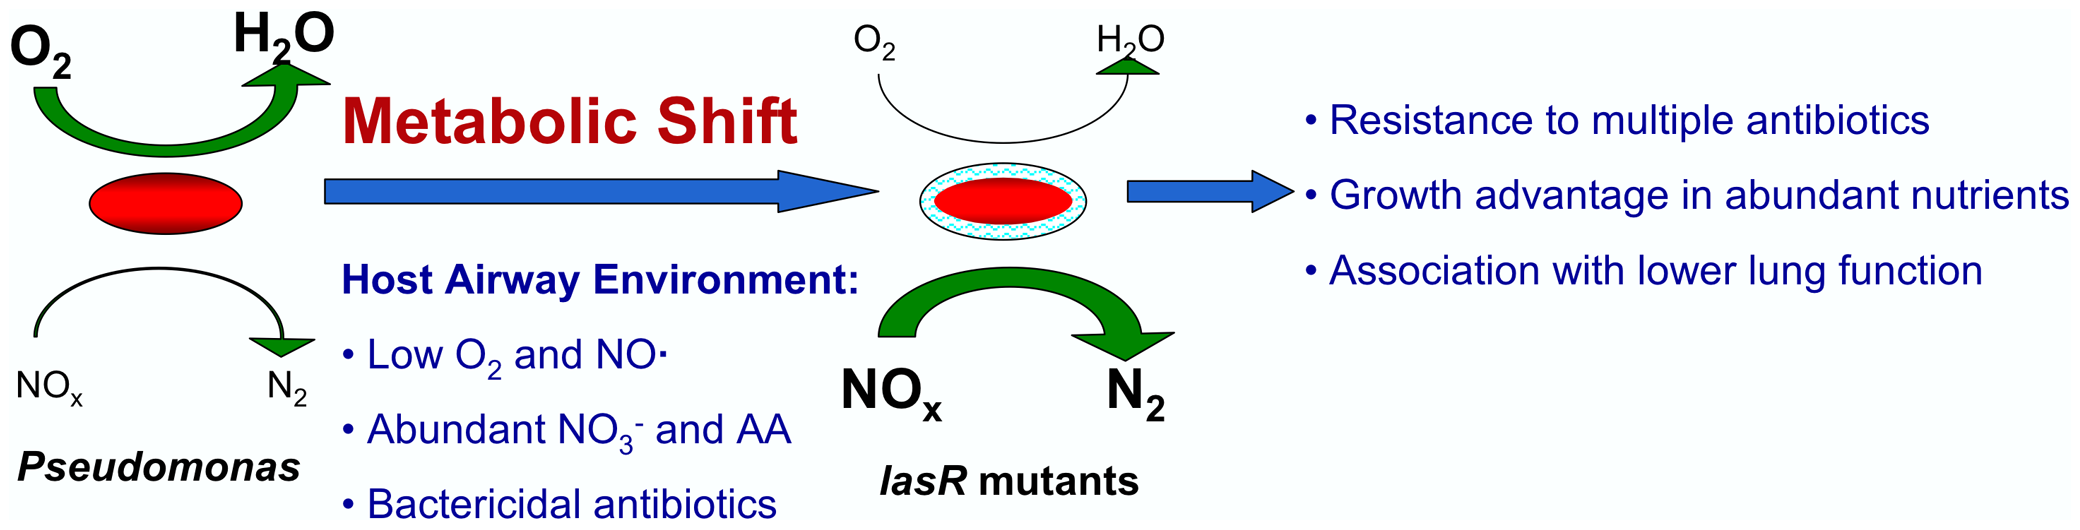 A model for metabolic changes in CF-adapted <i>lasR</i> mutant isolates of <i>P. aeruginosa</i>.